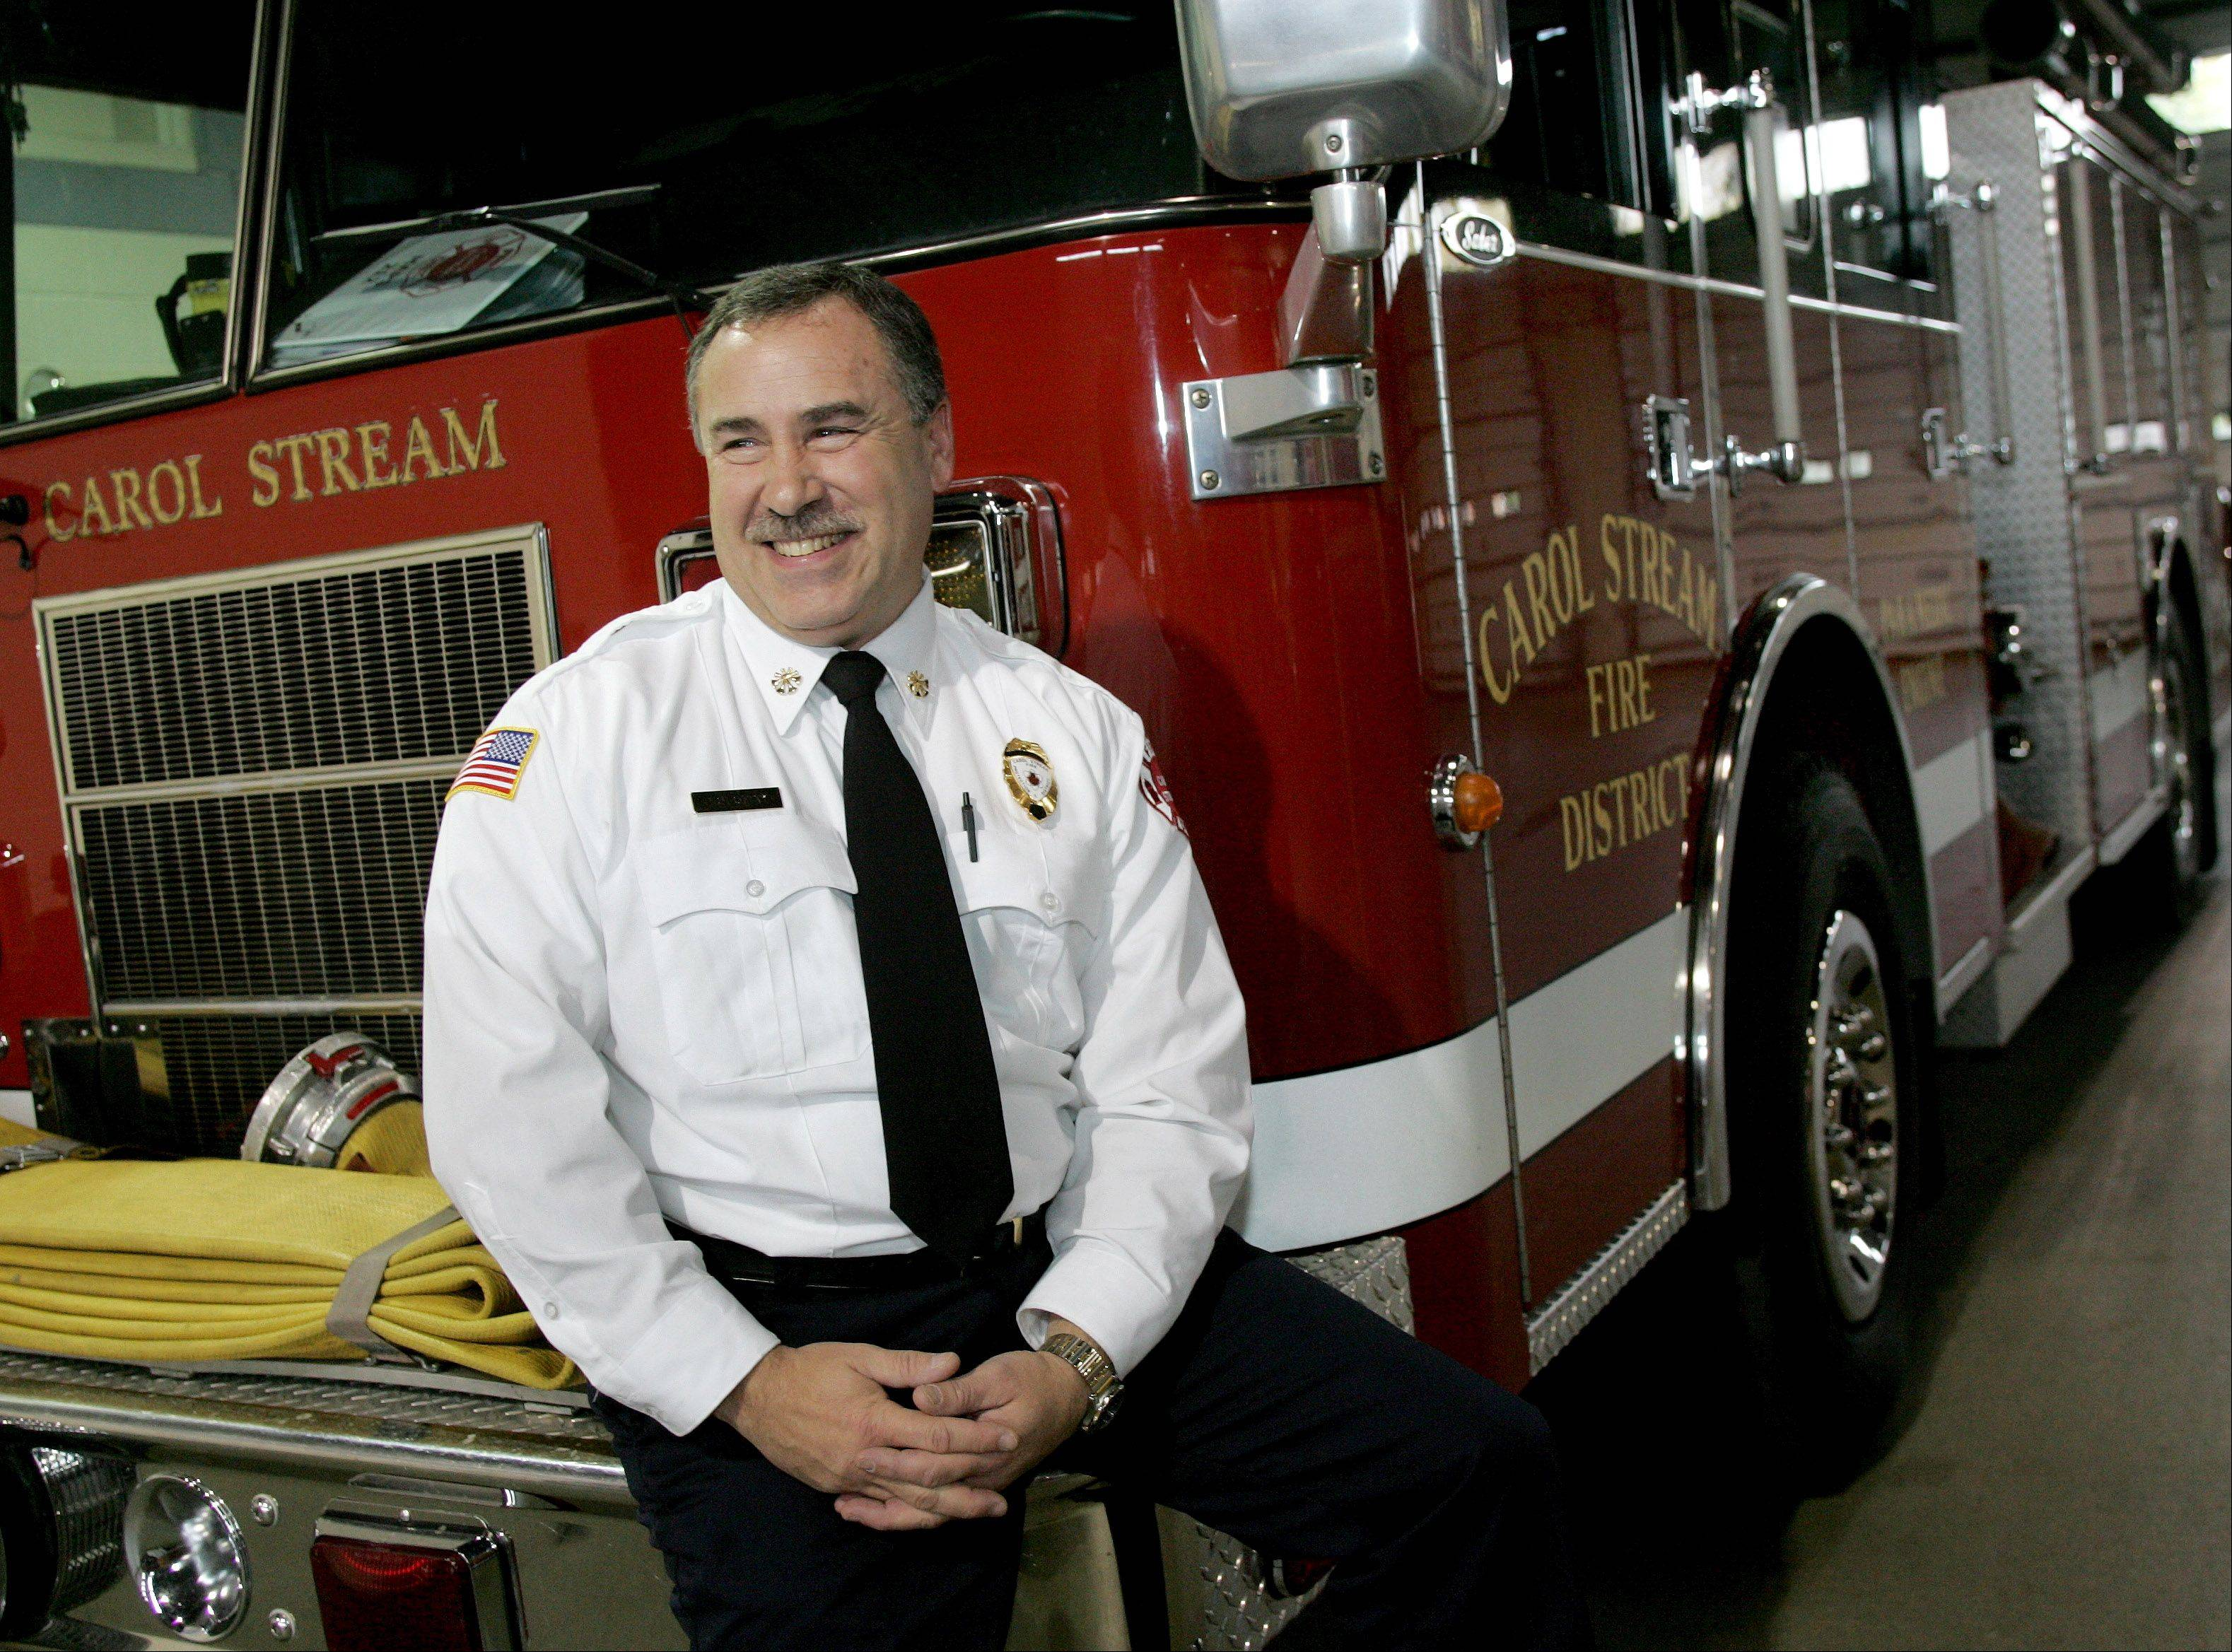 Carol Stream Fire Chief Rick Kolomay says a year old alliance with fire departments from Wheaton, West Chicago and Winfield is paying dividends in terms of cost savings and public safety.